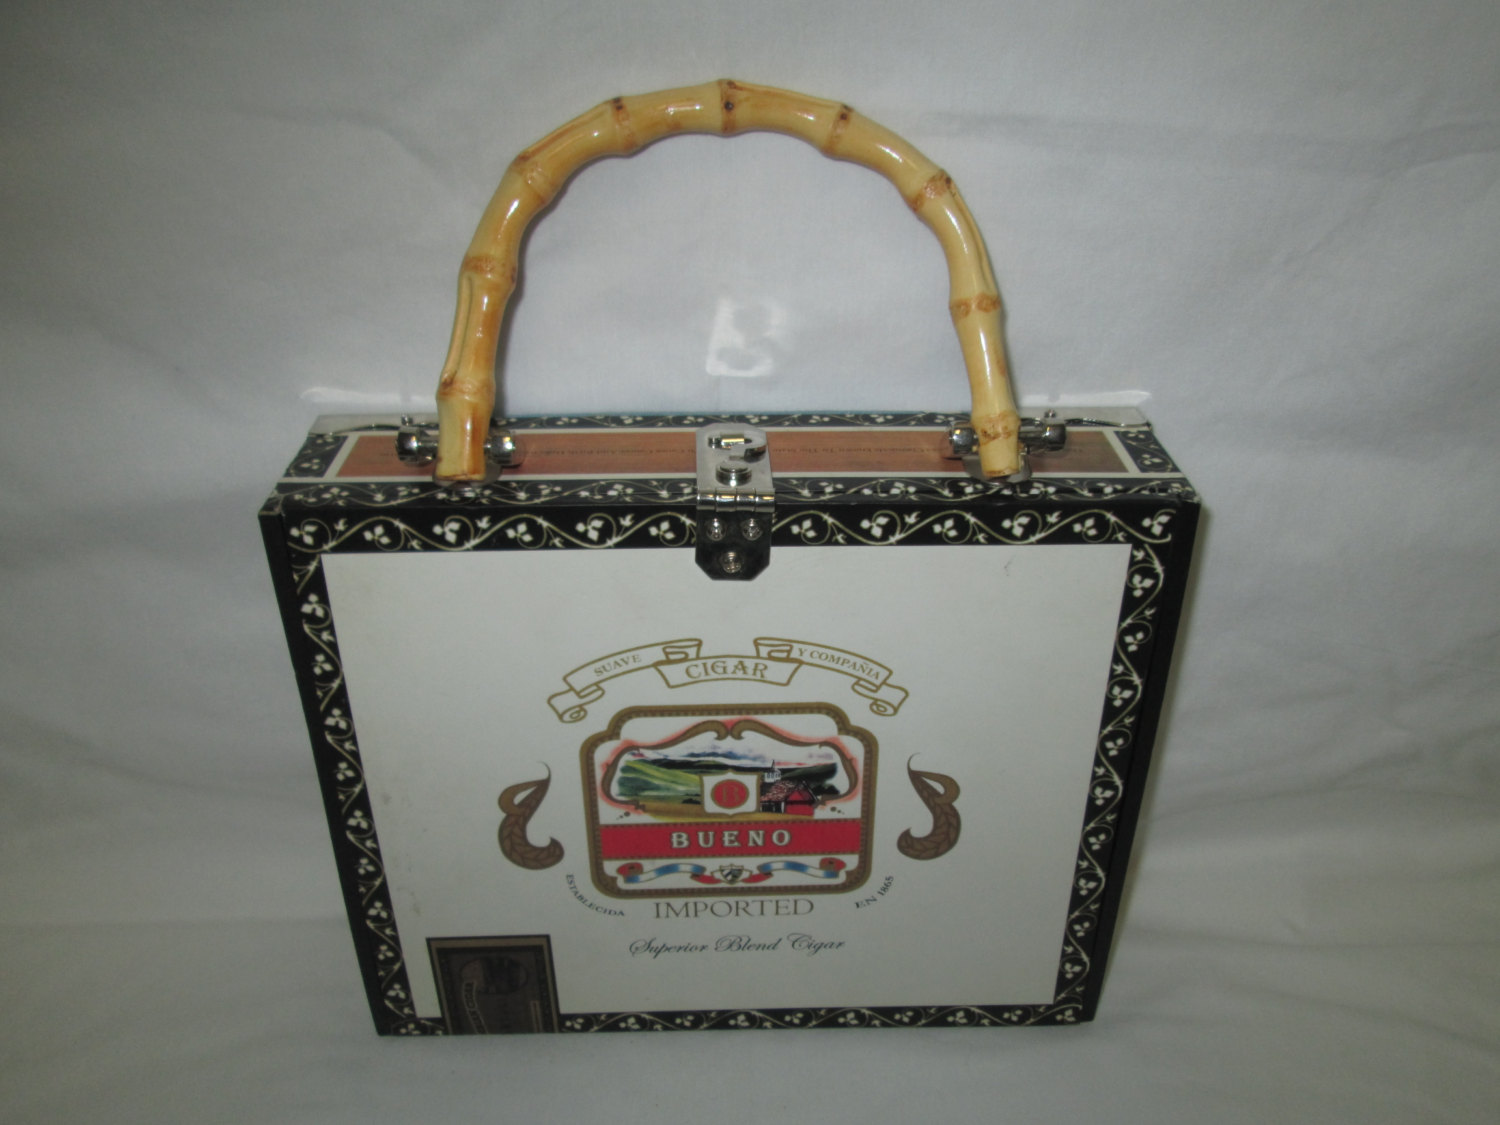 Vintage Cigar Box Turned Purse Handbag Great Condition Bamboo Handle Lined Inside Palm Tree Pattern Fabric